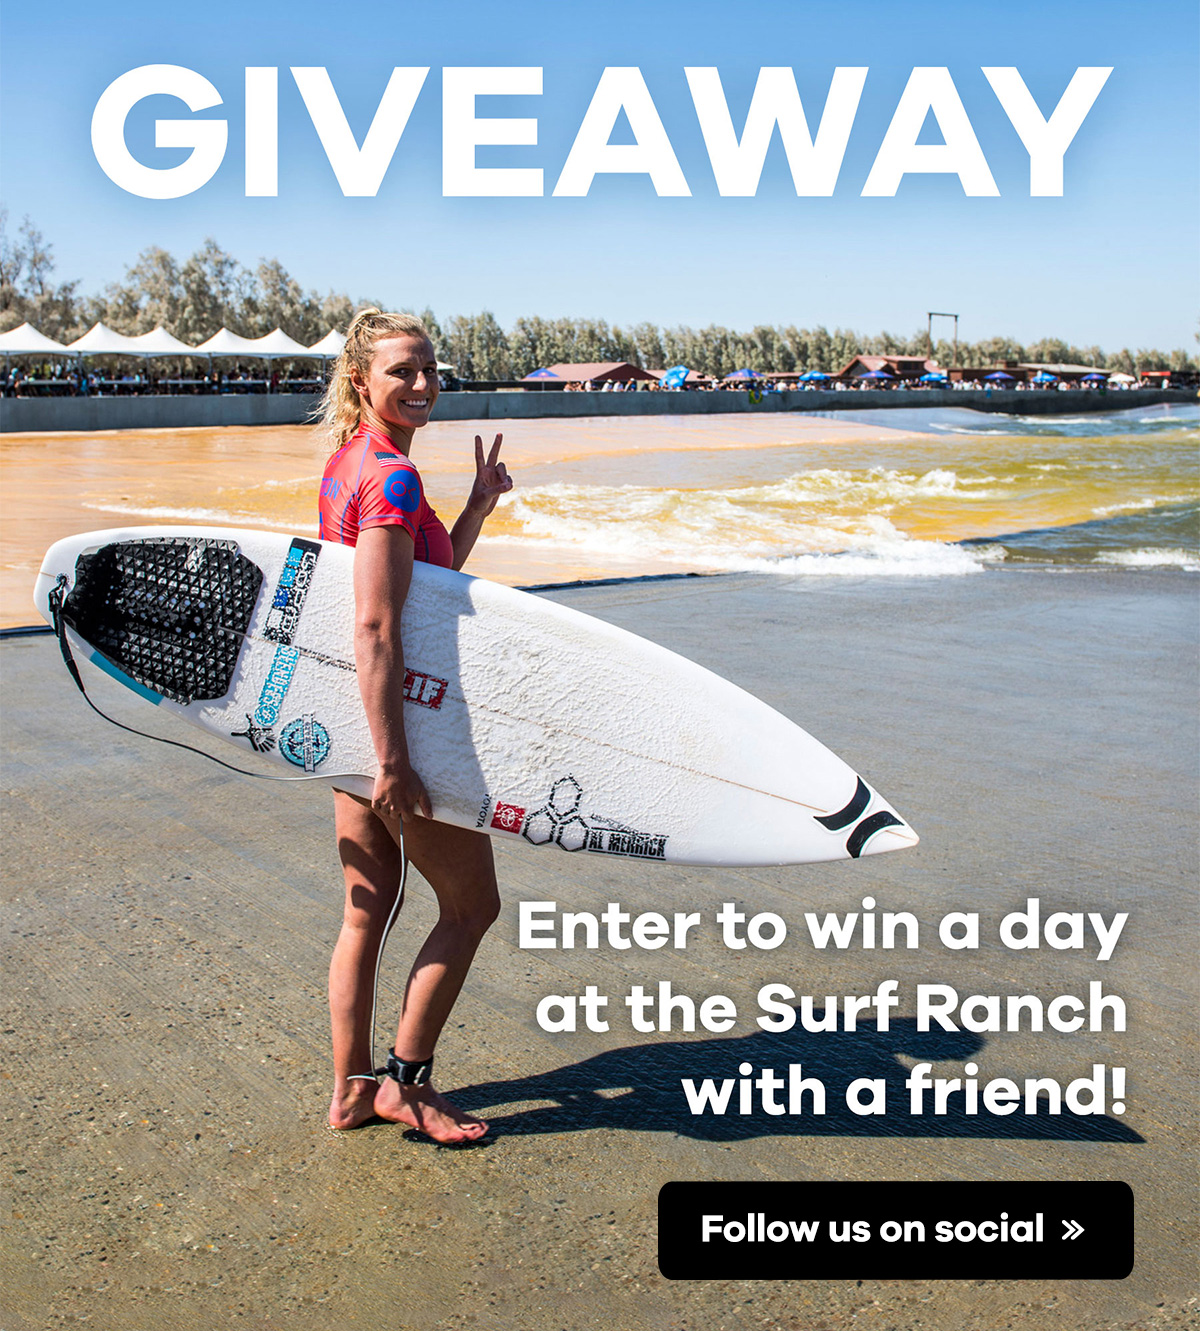 Giveaway | Enter to win a day at the Surf Ranch with a friend! | Follow us on social >>